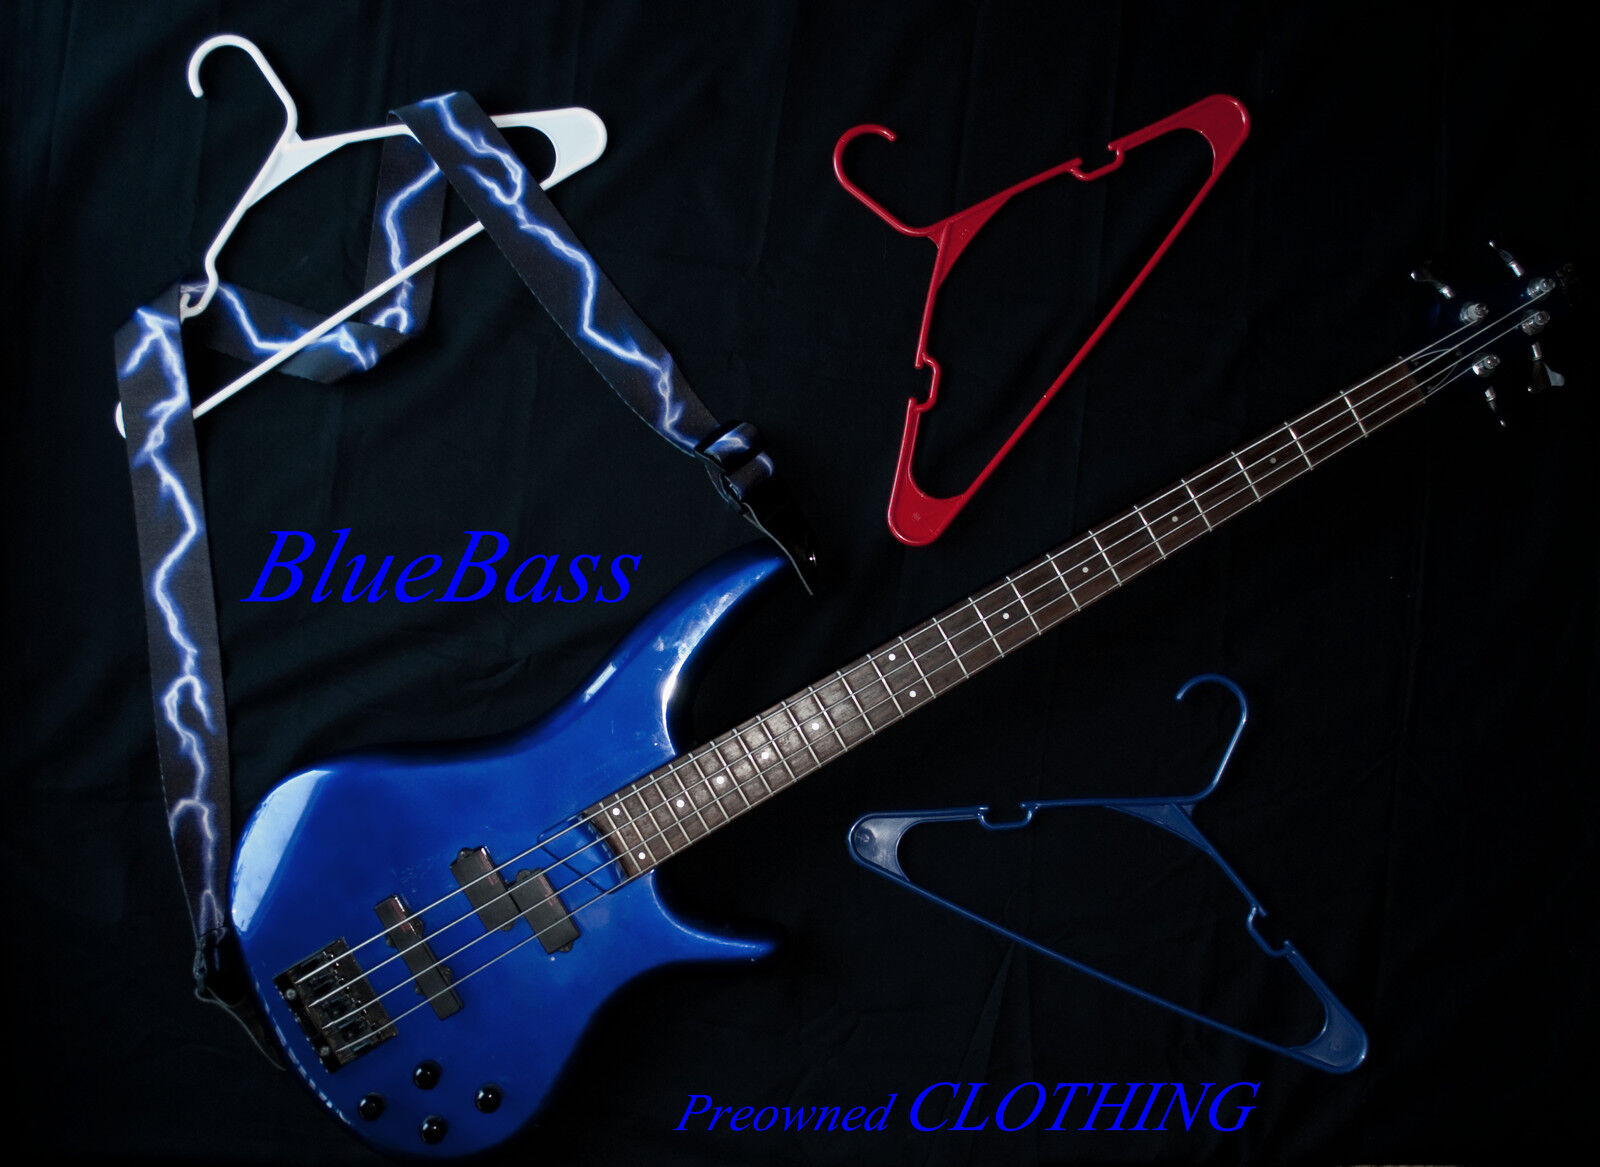 BlueBass Pre-Owned Clothing